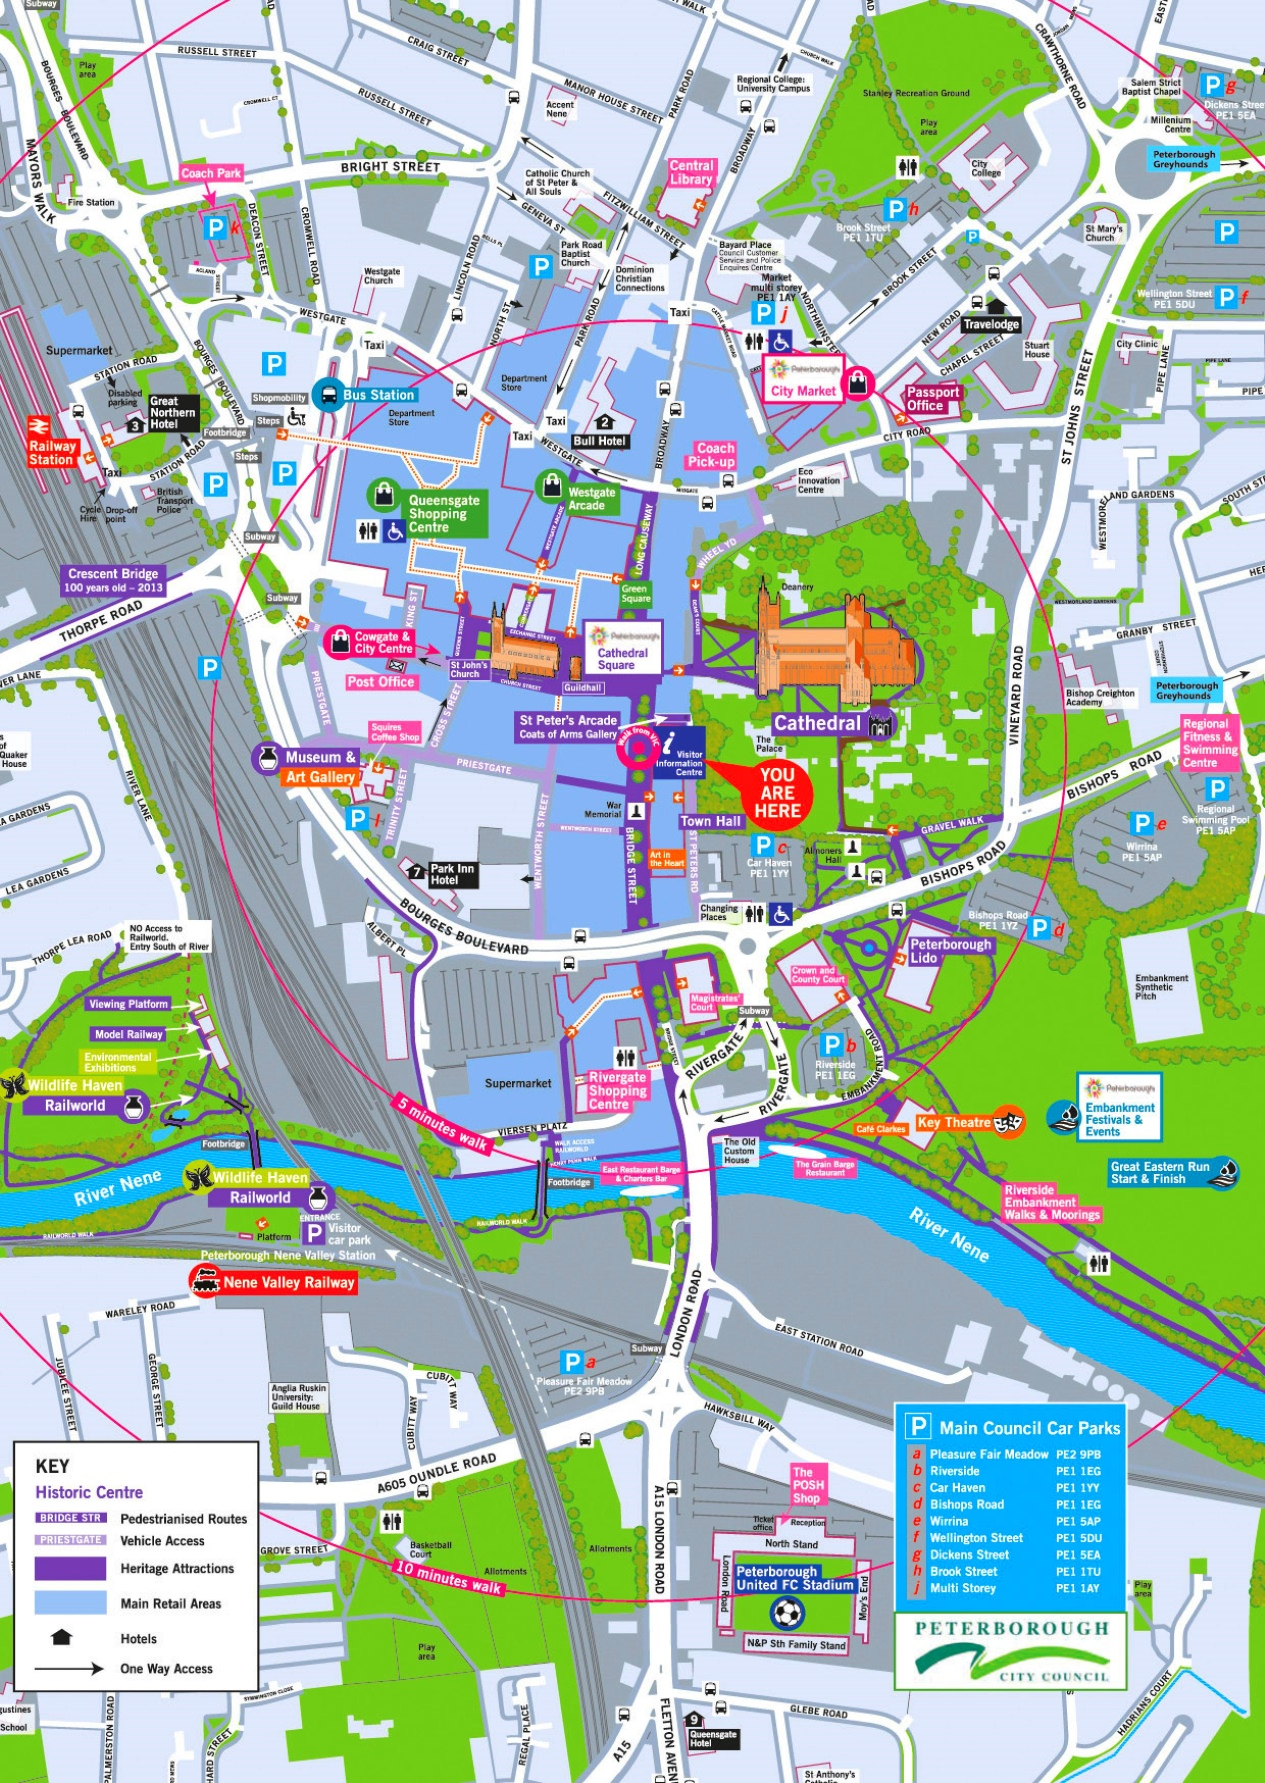 London City Centre Map.Peterborough Tourist Map